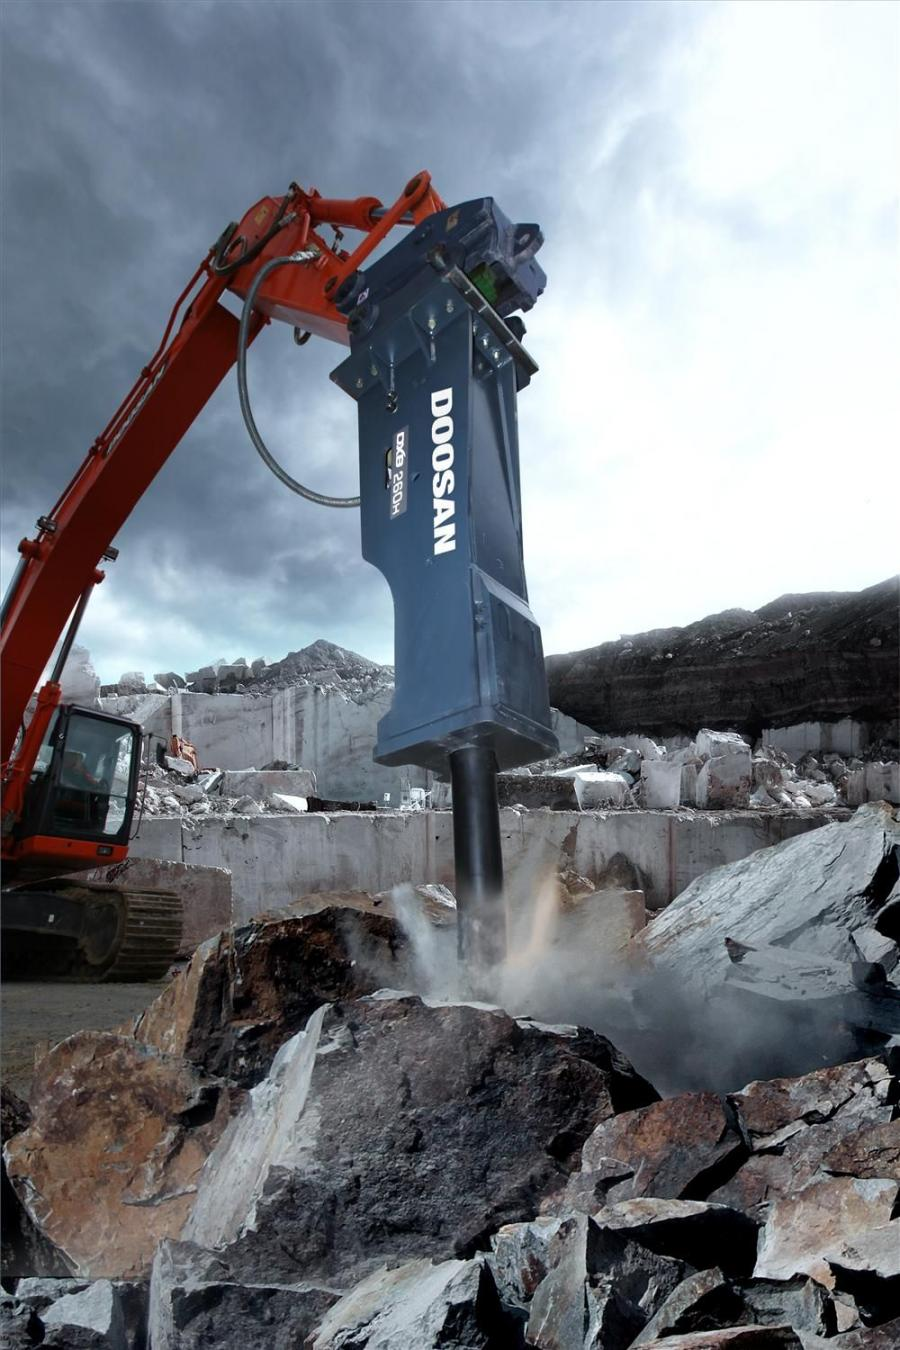 Delivering up to 600 blows per minute, the 5,400-lb. (2,500 kg) DXB260H is designed for use with excavators in the 30 to 41 ton (27 to 37 t) weight range, specifically the Doosan DX300LC and DX350LC.